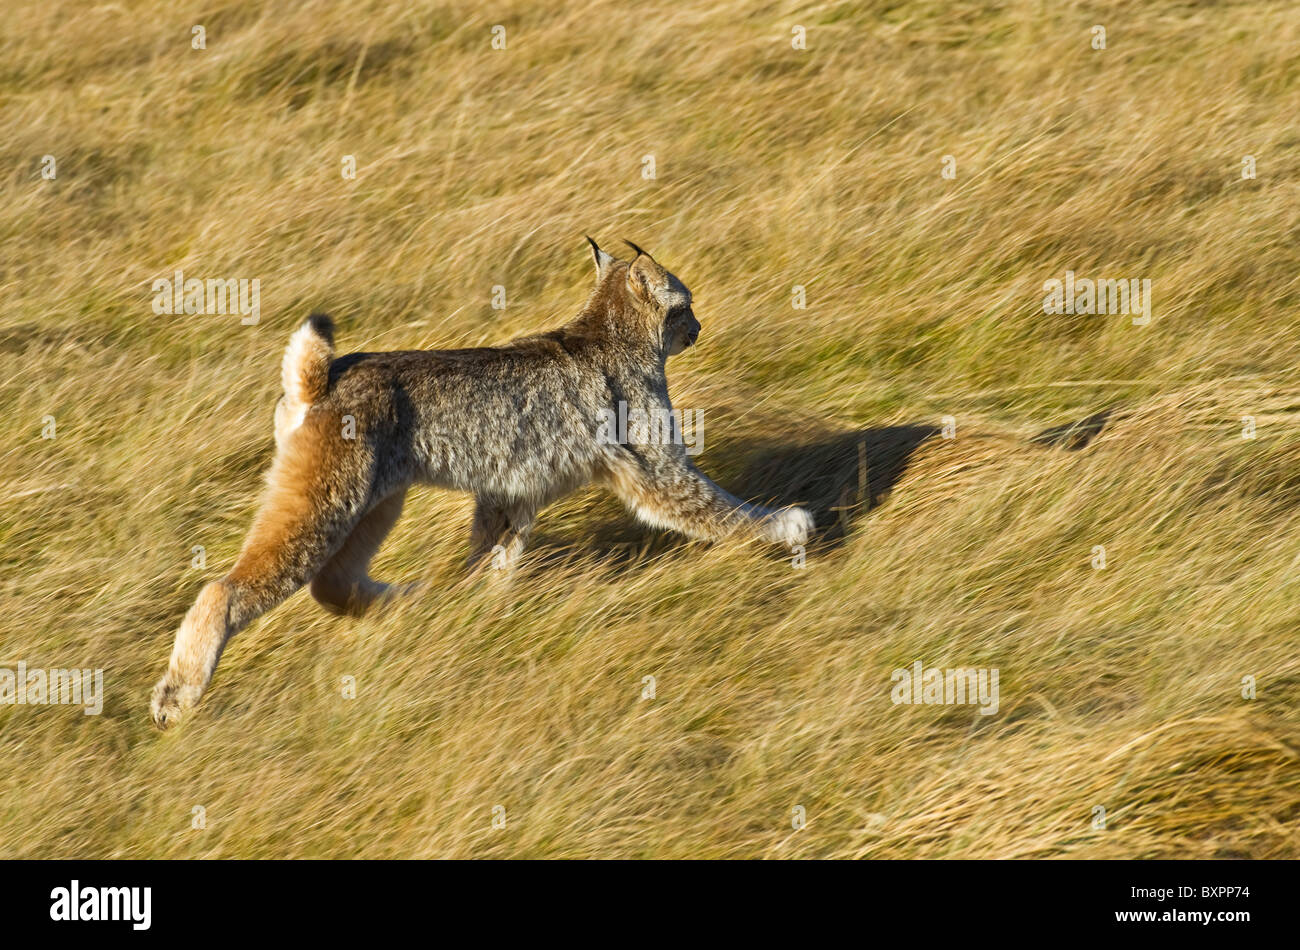 A wild Canadian Lynx moving away quickly in a running motion through the deep fall grass. - Stock Image